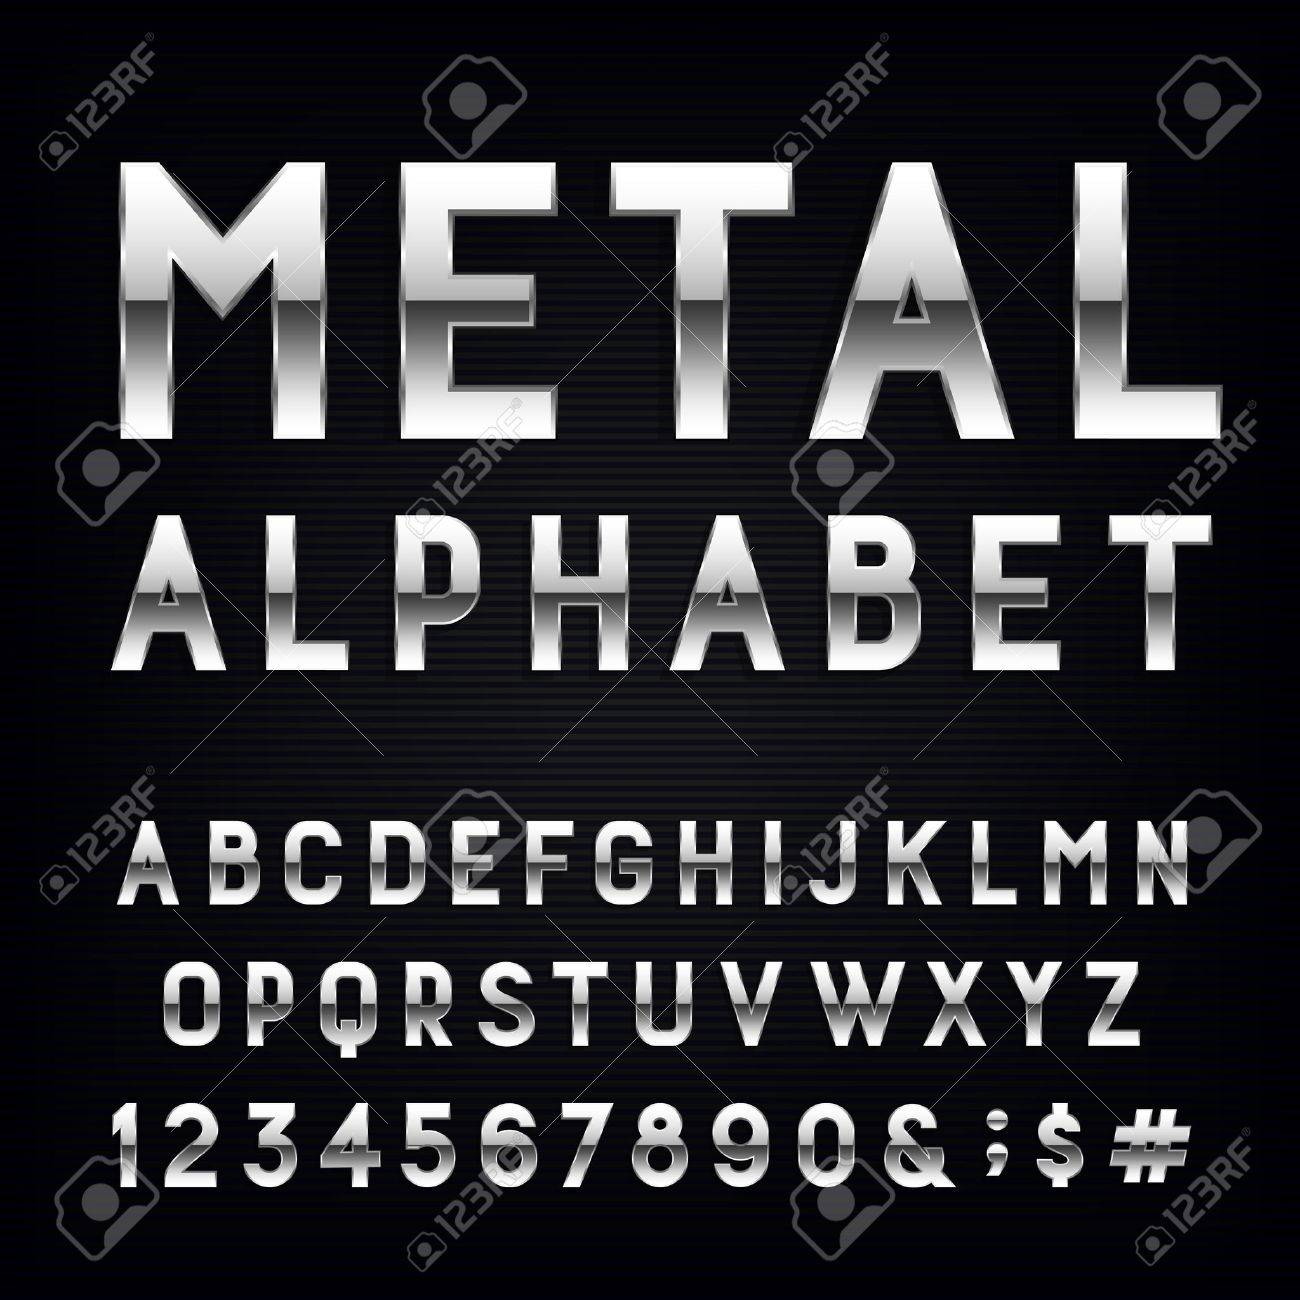 Metal Alphabet Vector Font. Type letters, numbers and punctuation marks. Chrome effect letters on dark background. Vector typeset for headlines, posters etc. - 45732568